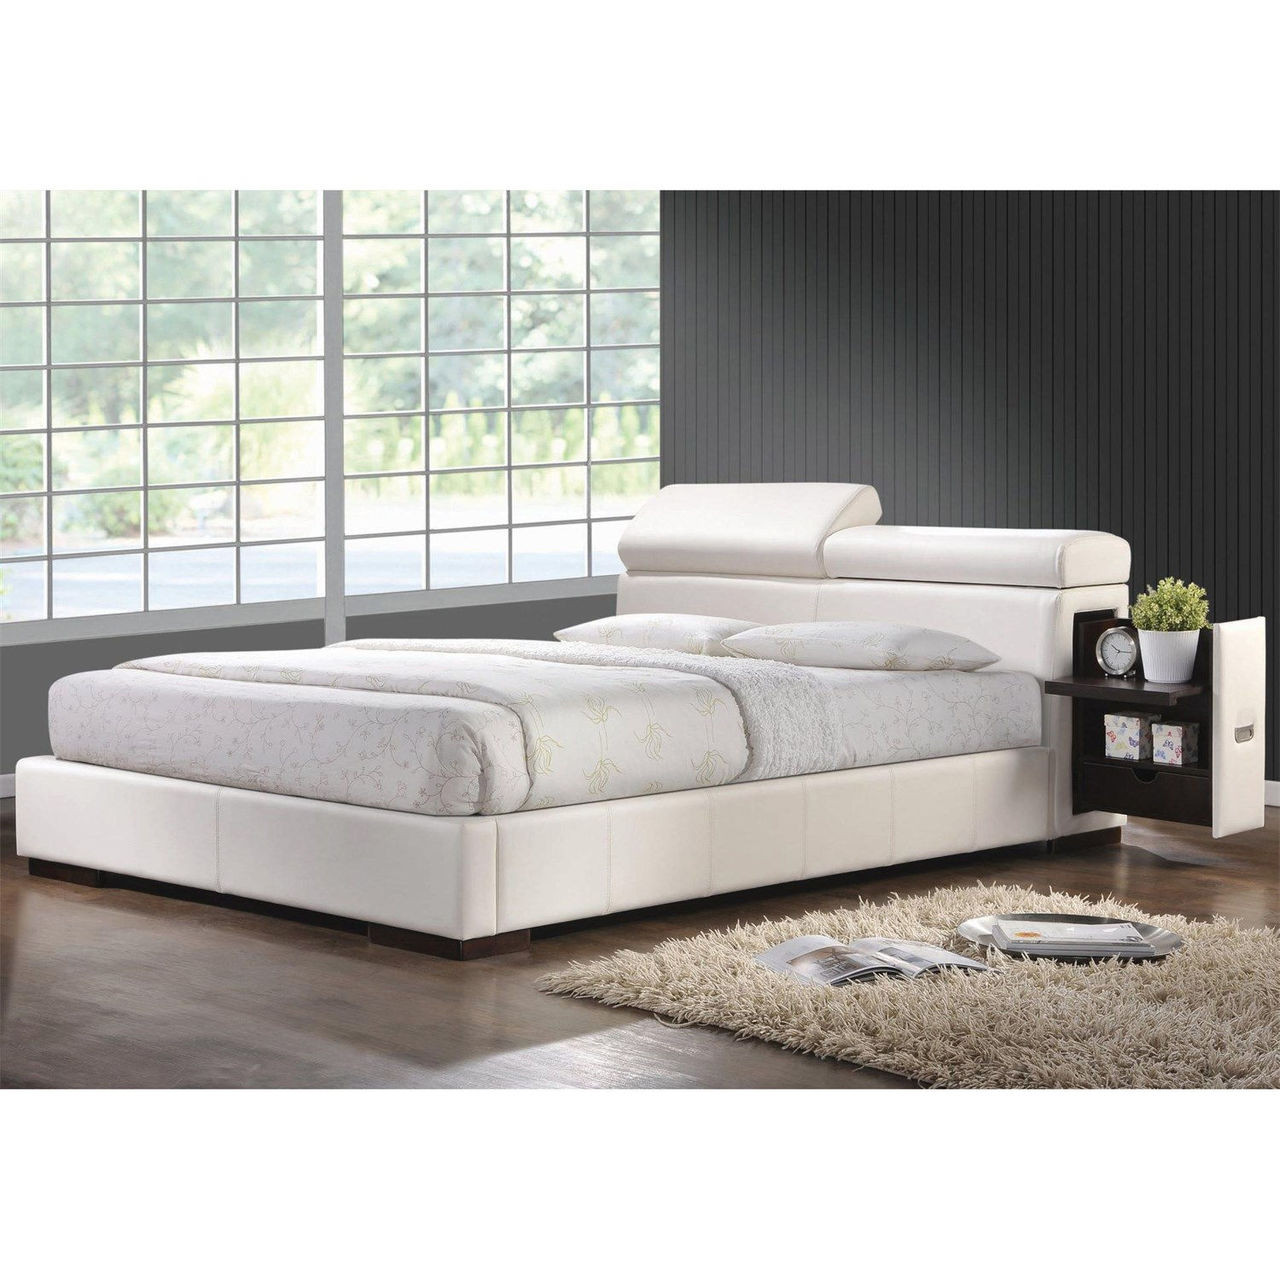 Coaster Maxine Ultra Modern Upholstered Bed in White